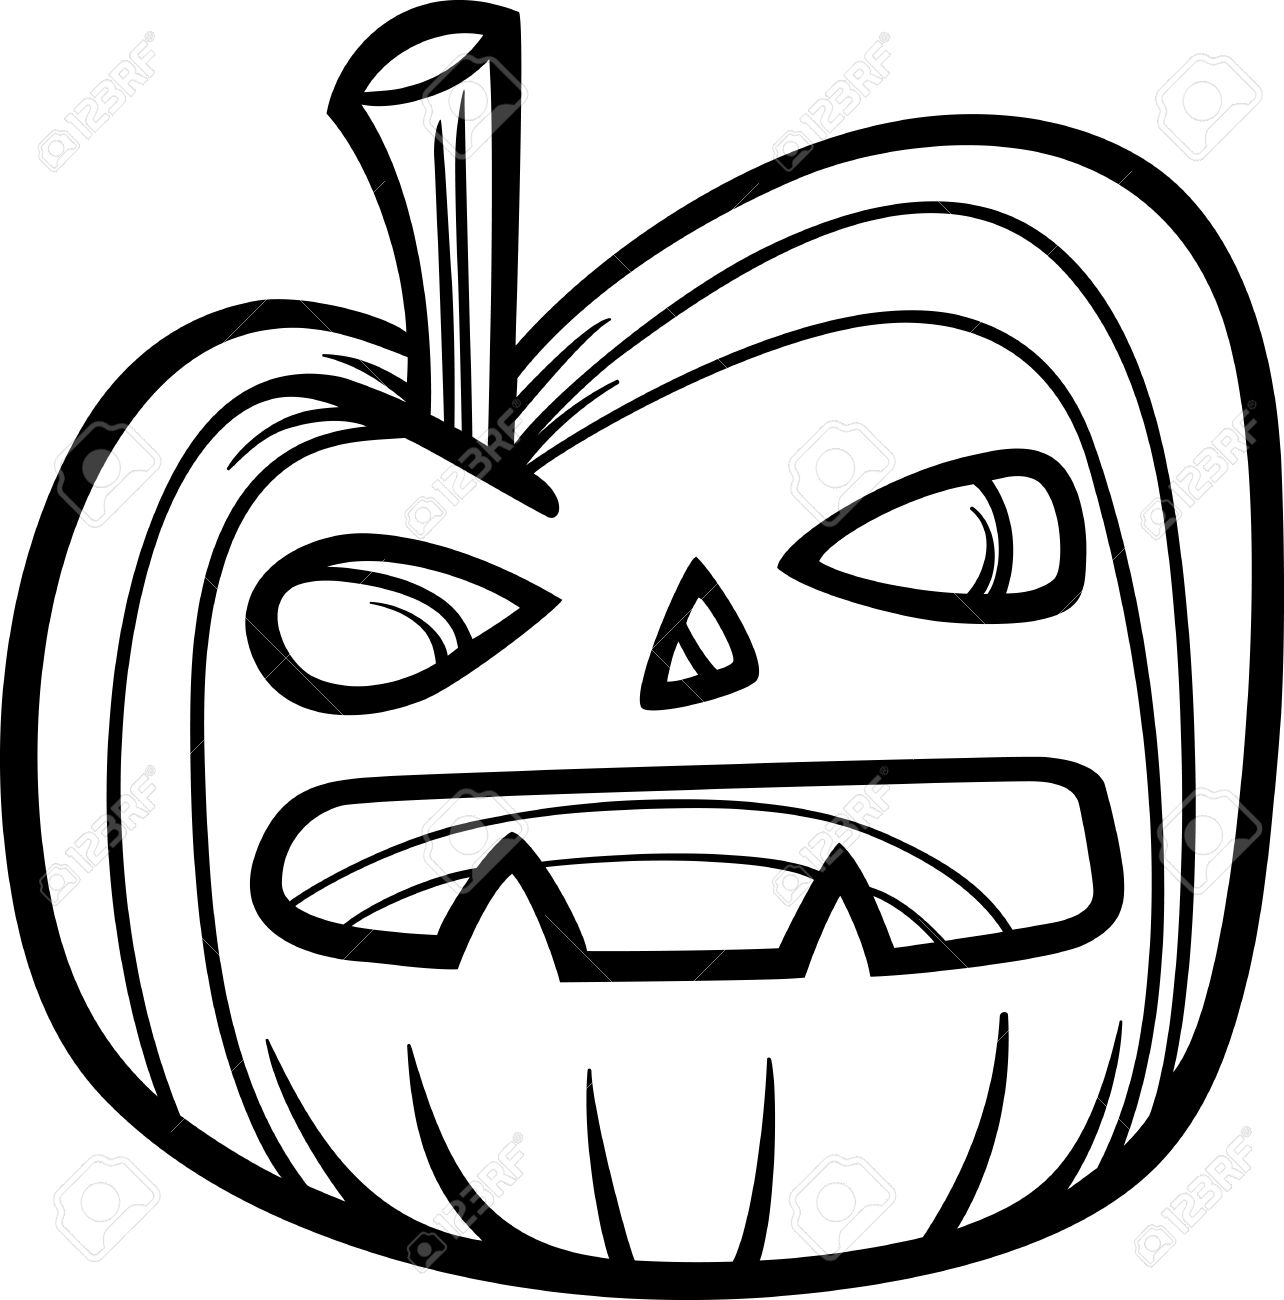 1284x1300 Black And White Cartoon Illustration Of Spooky Halloween Pumpkin